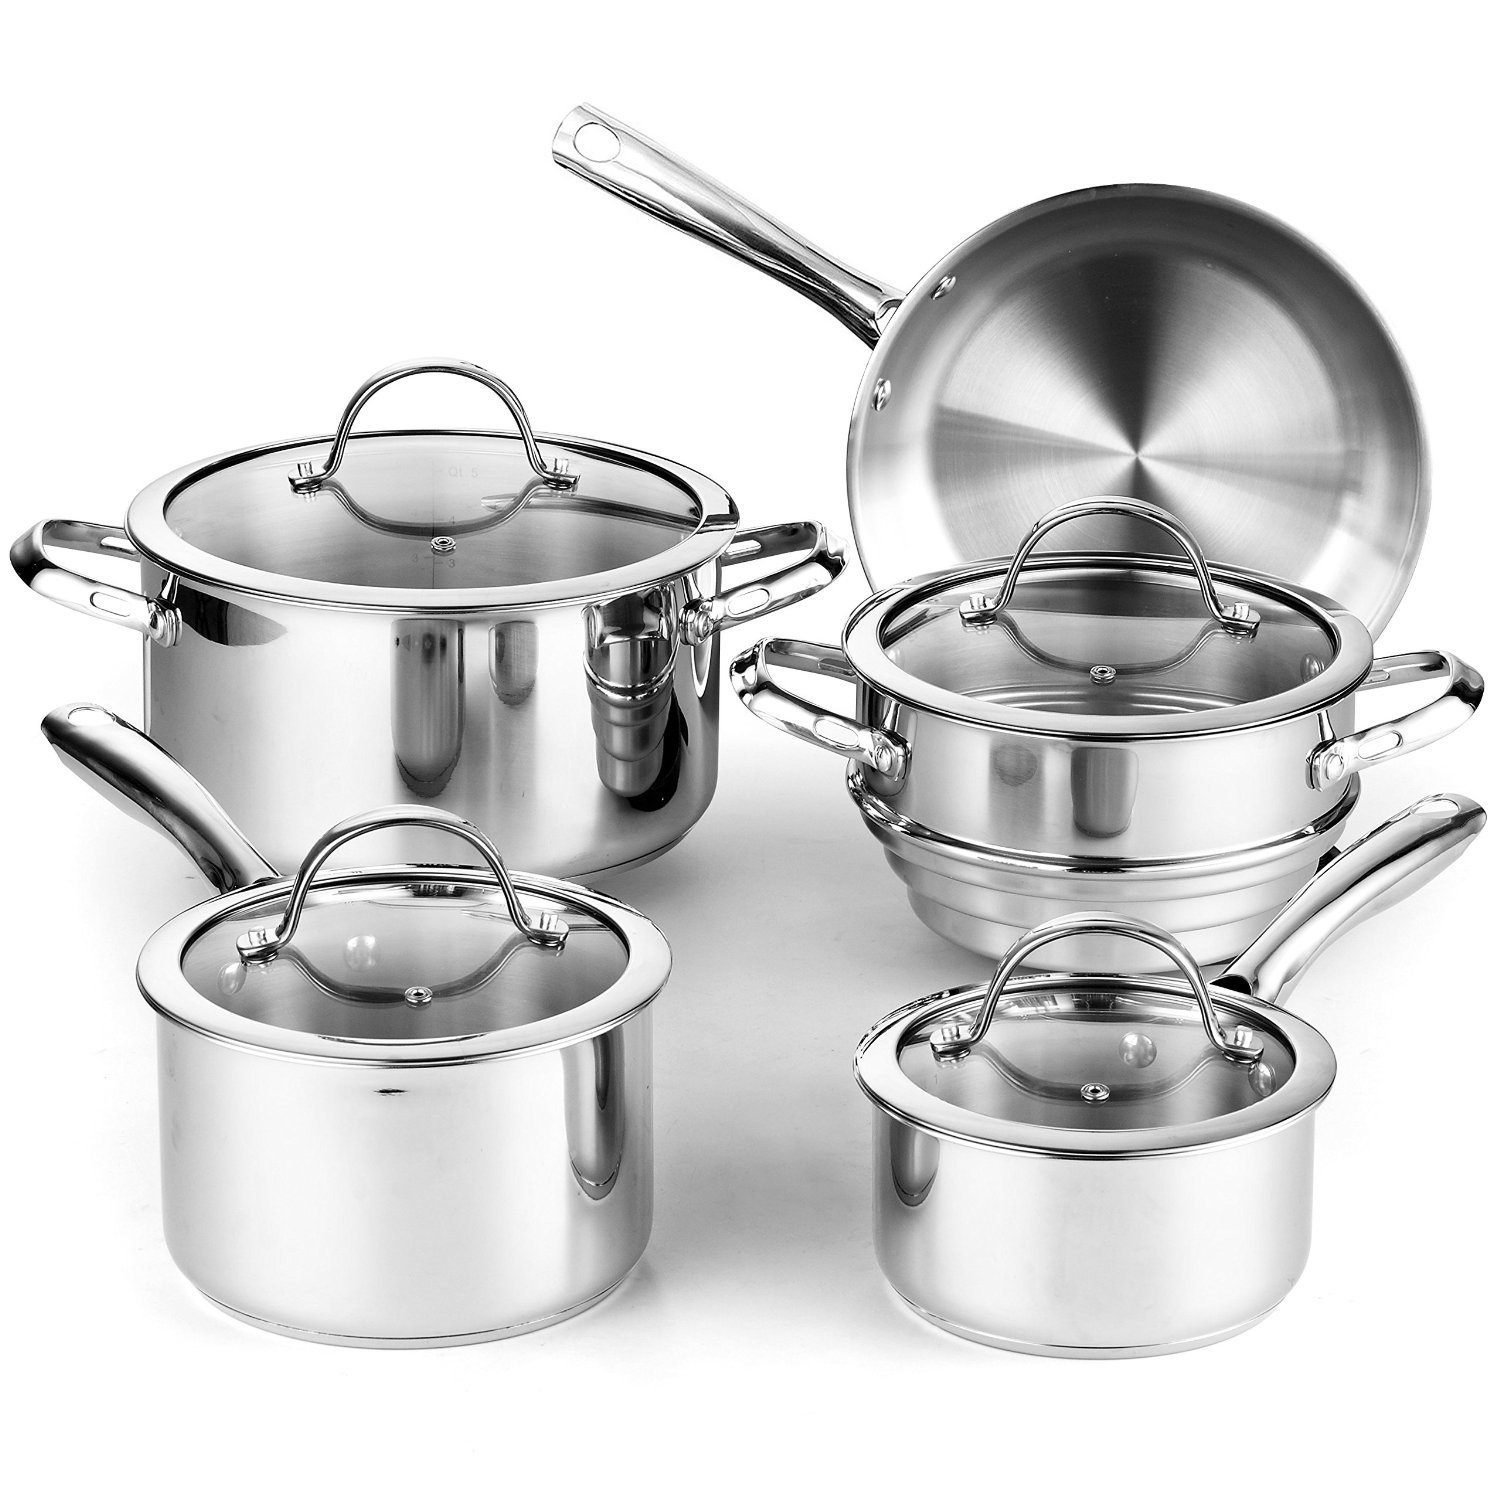 with Lids Basics 9 Piece Stainless Steel Induction Cookware Set